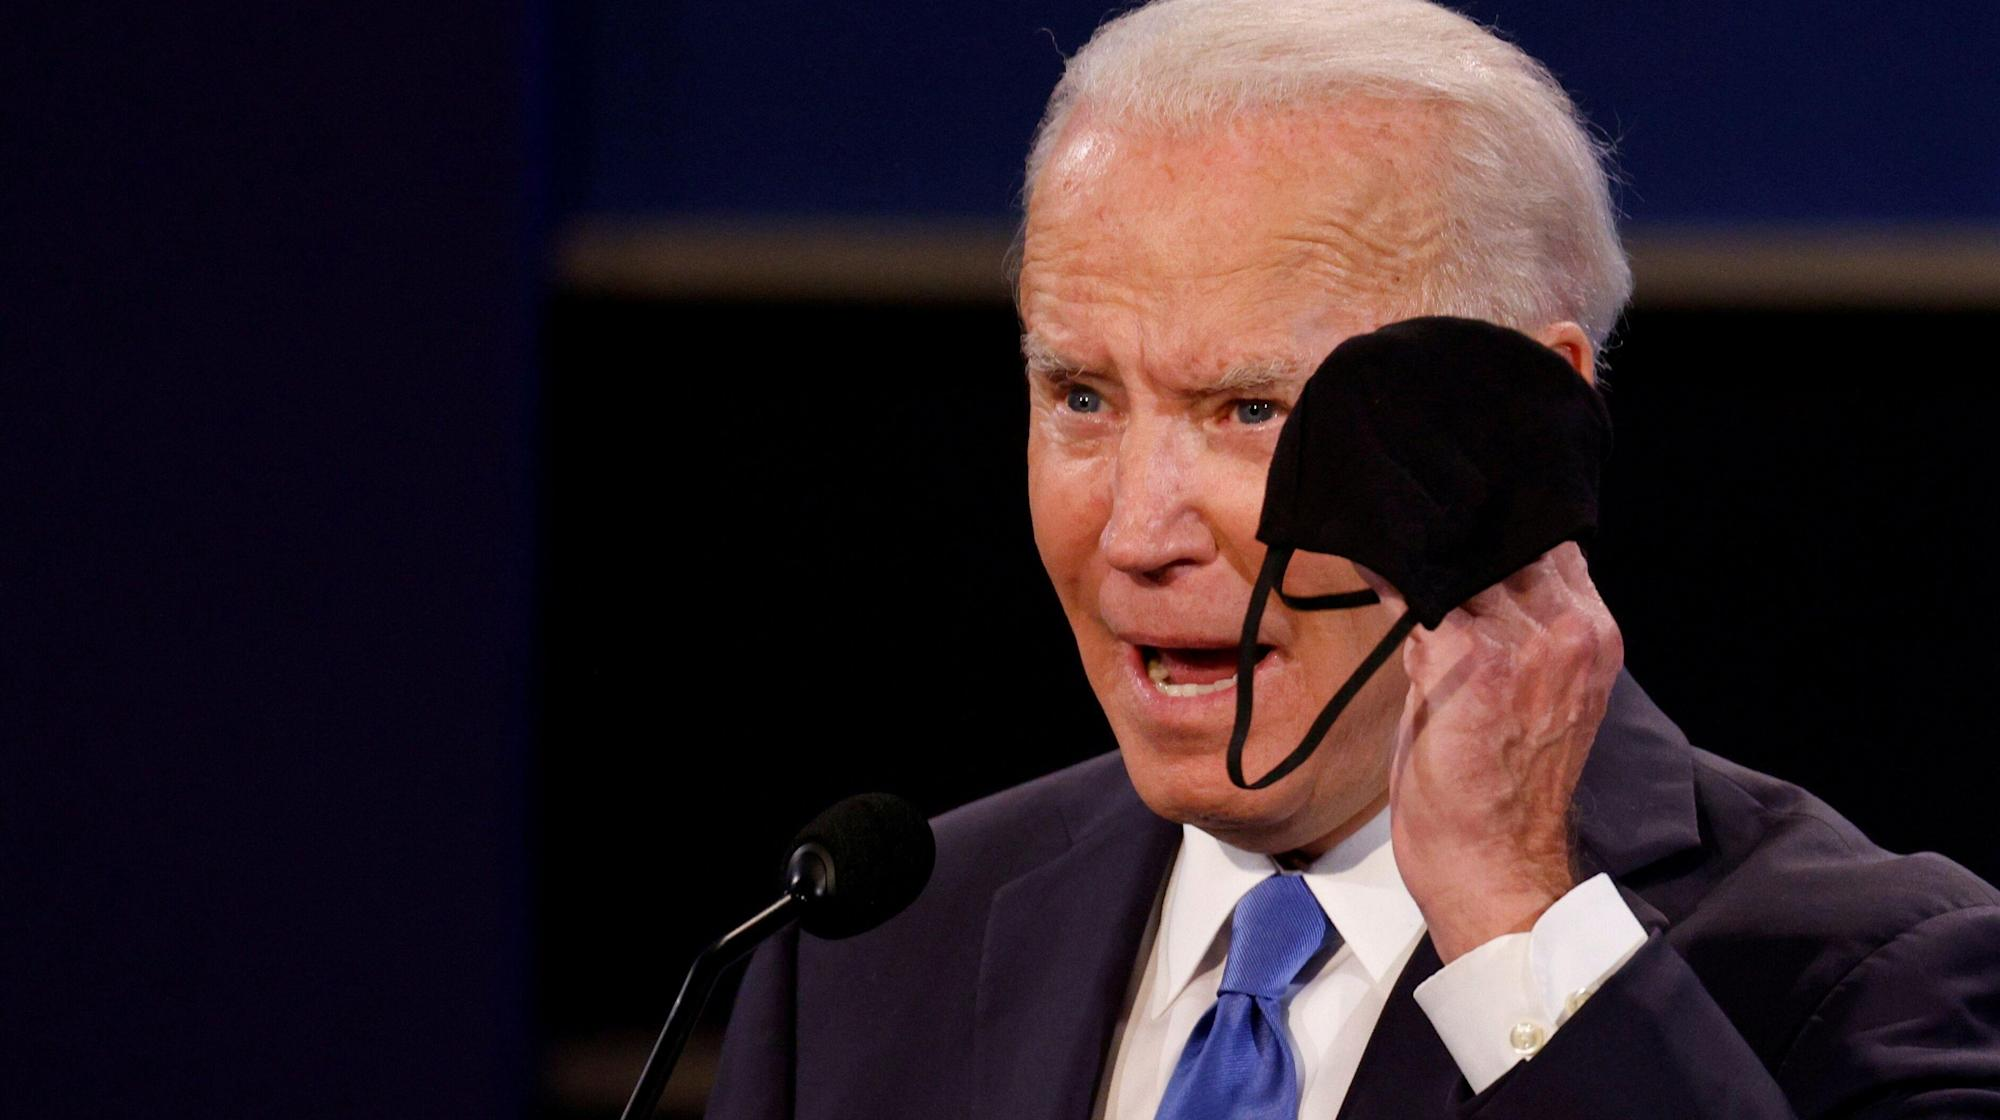 Joe Biden: GOP Lawmakers Who Didn't Wear Masks During Capitol Riot Need To 'Grow Up'